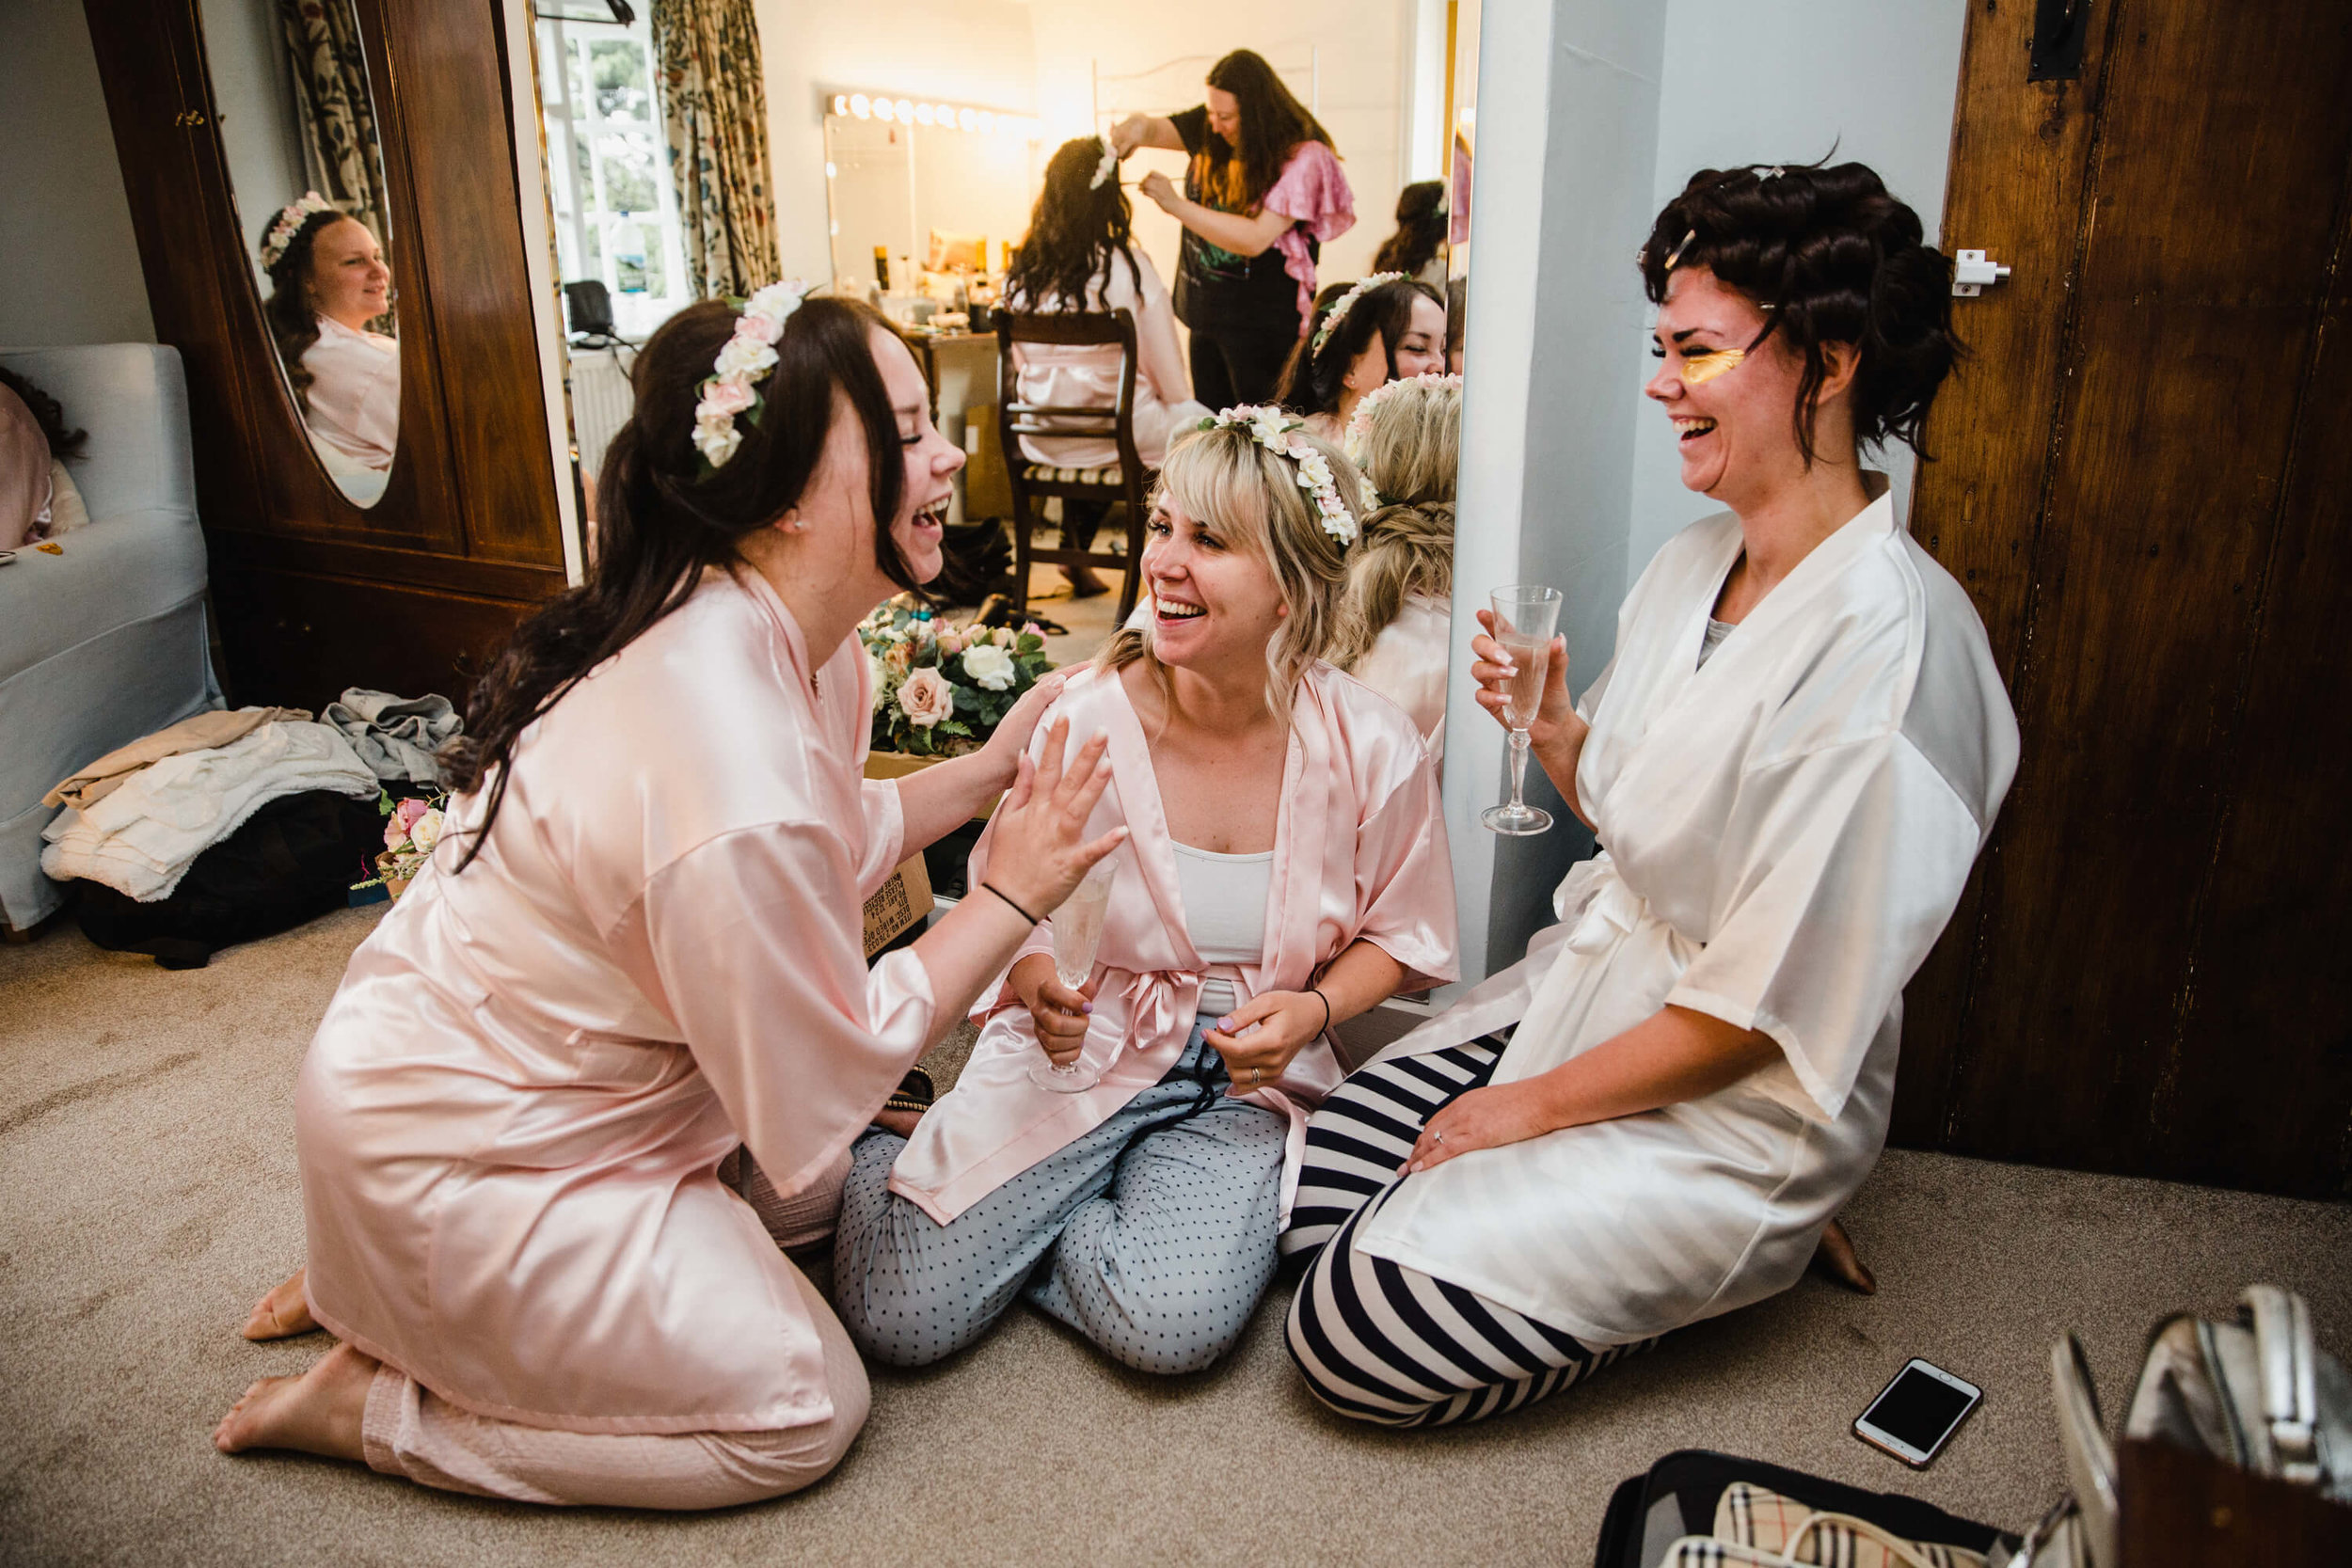 bridesmaids sharing laugh and joke with bride in mirror of bridal suite